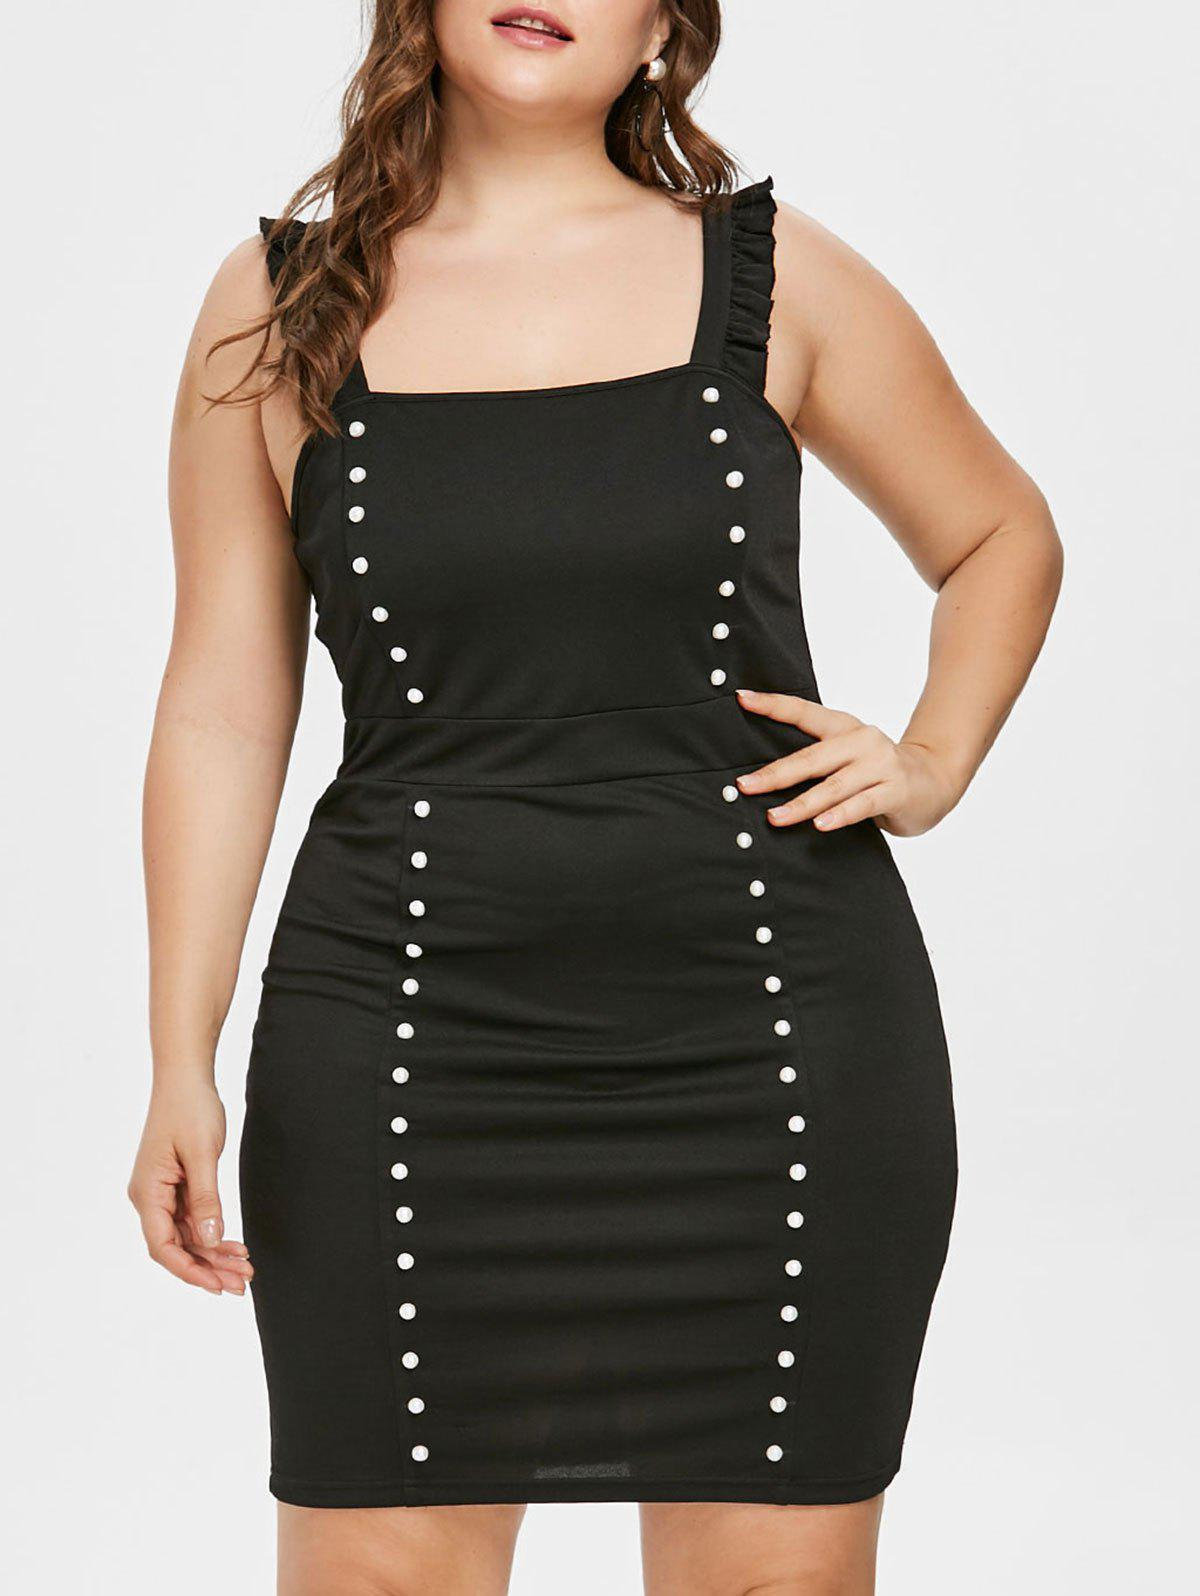 Plus Size Sleeveless Party Dress - BLACK L